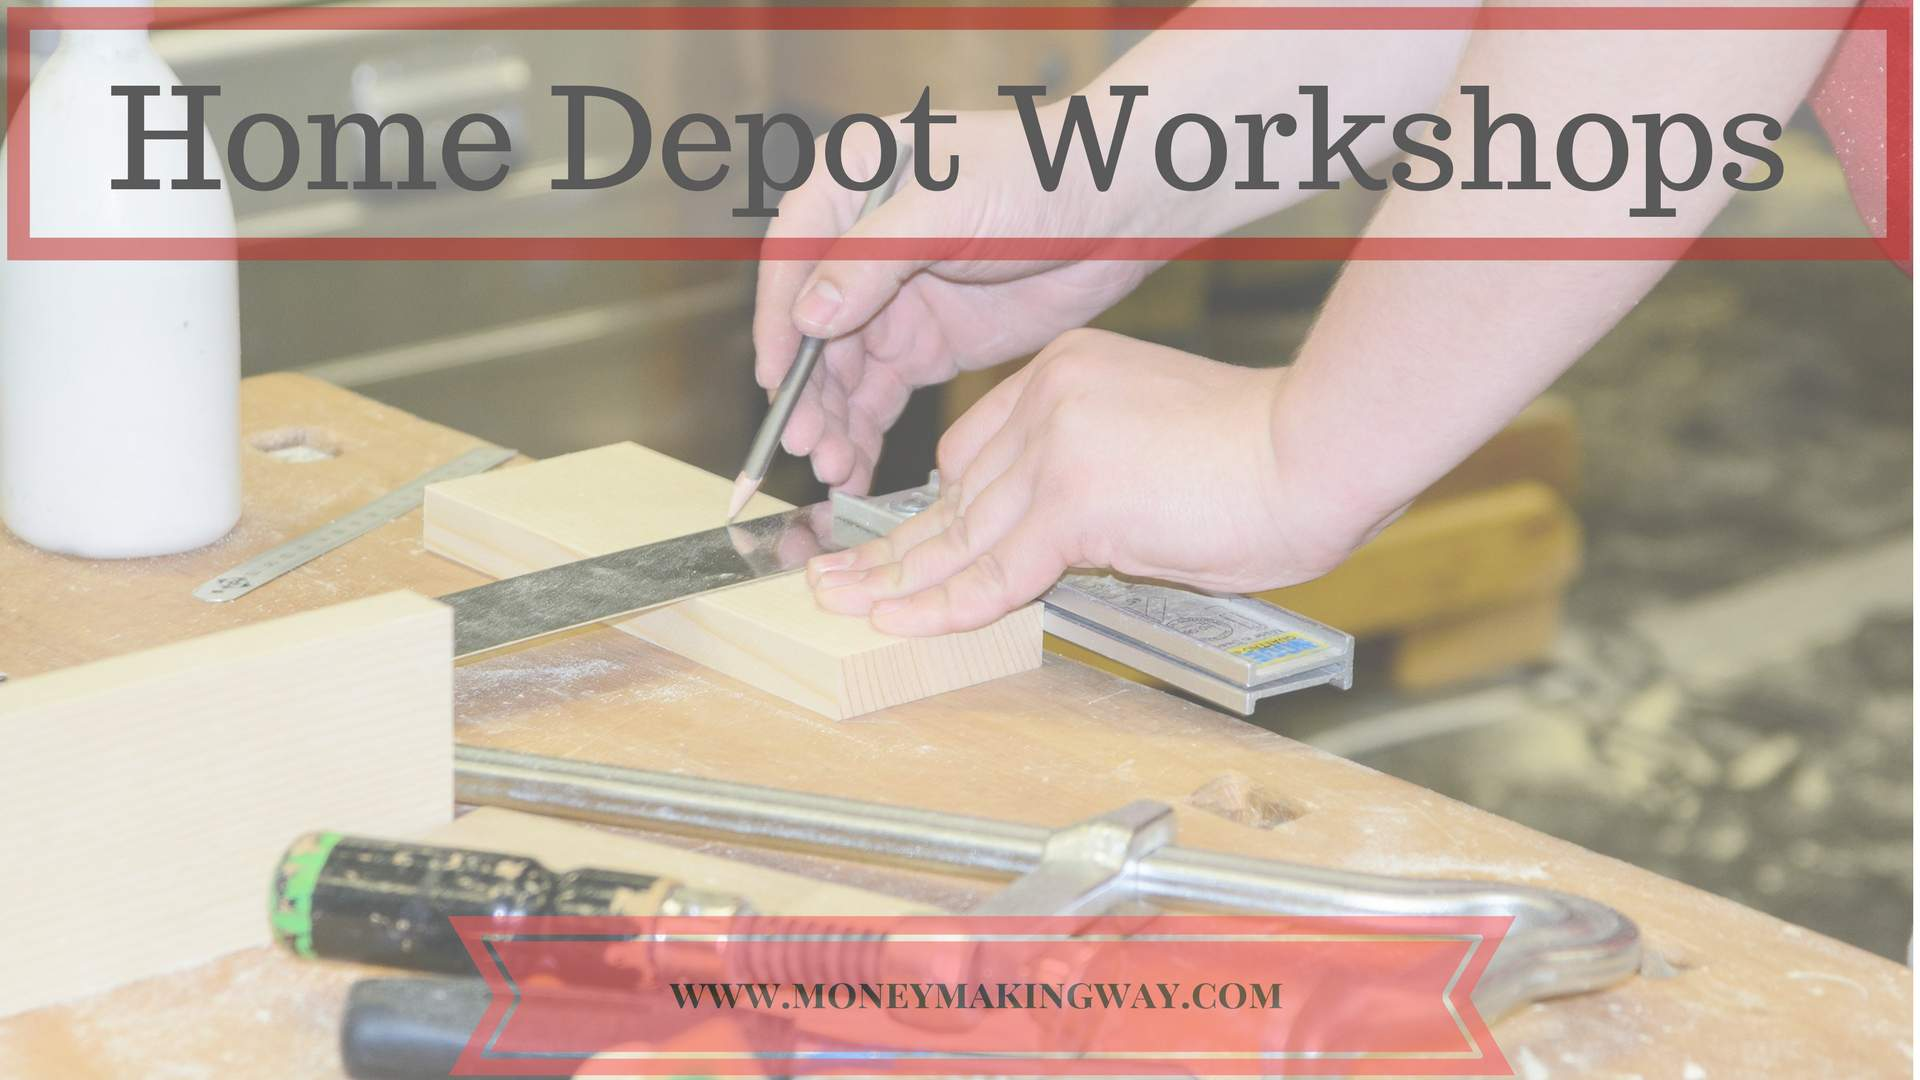 home depot workshops